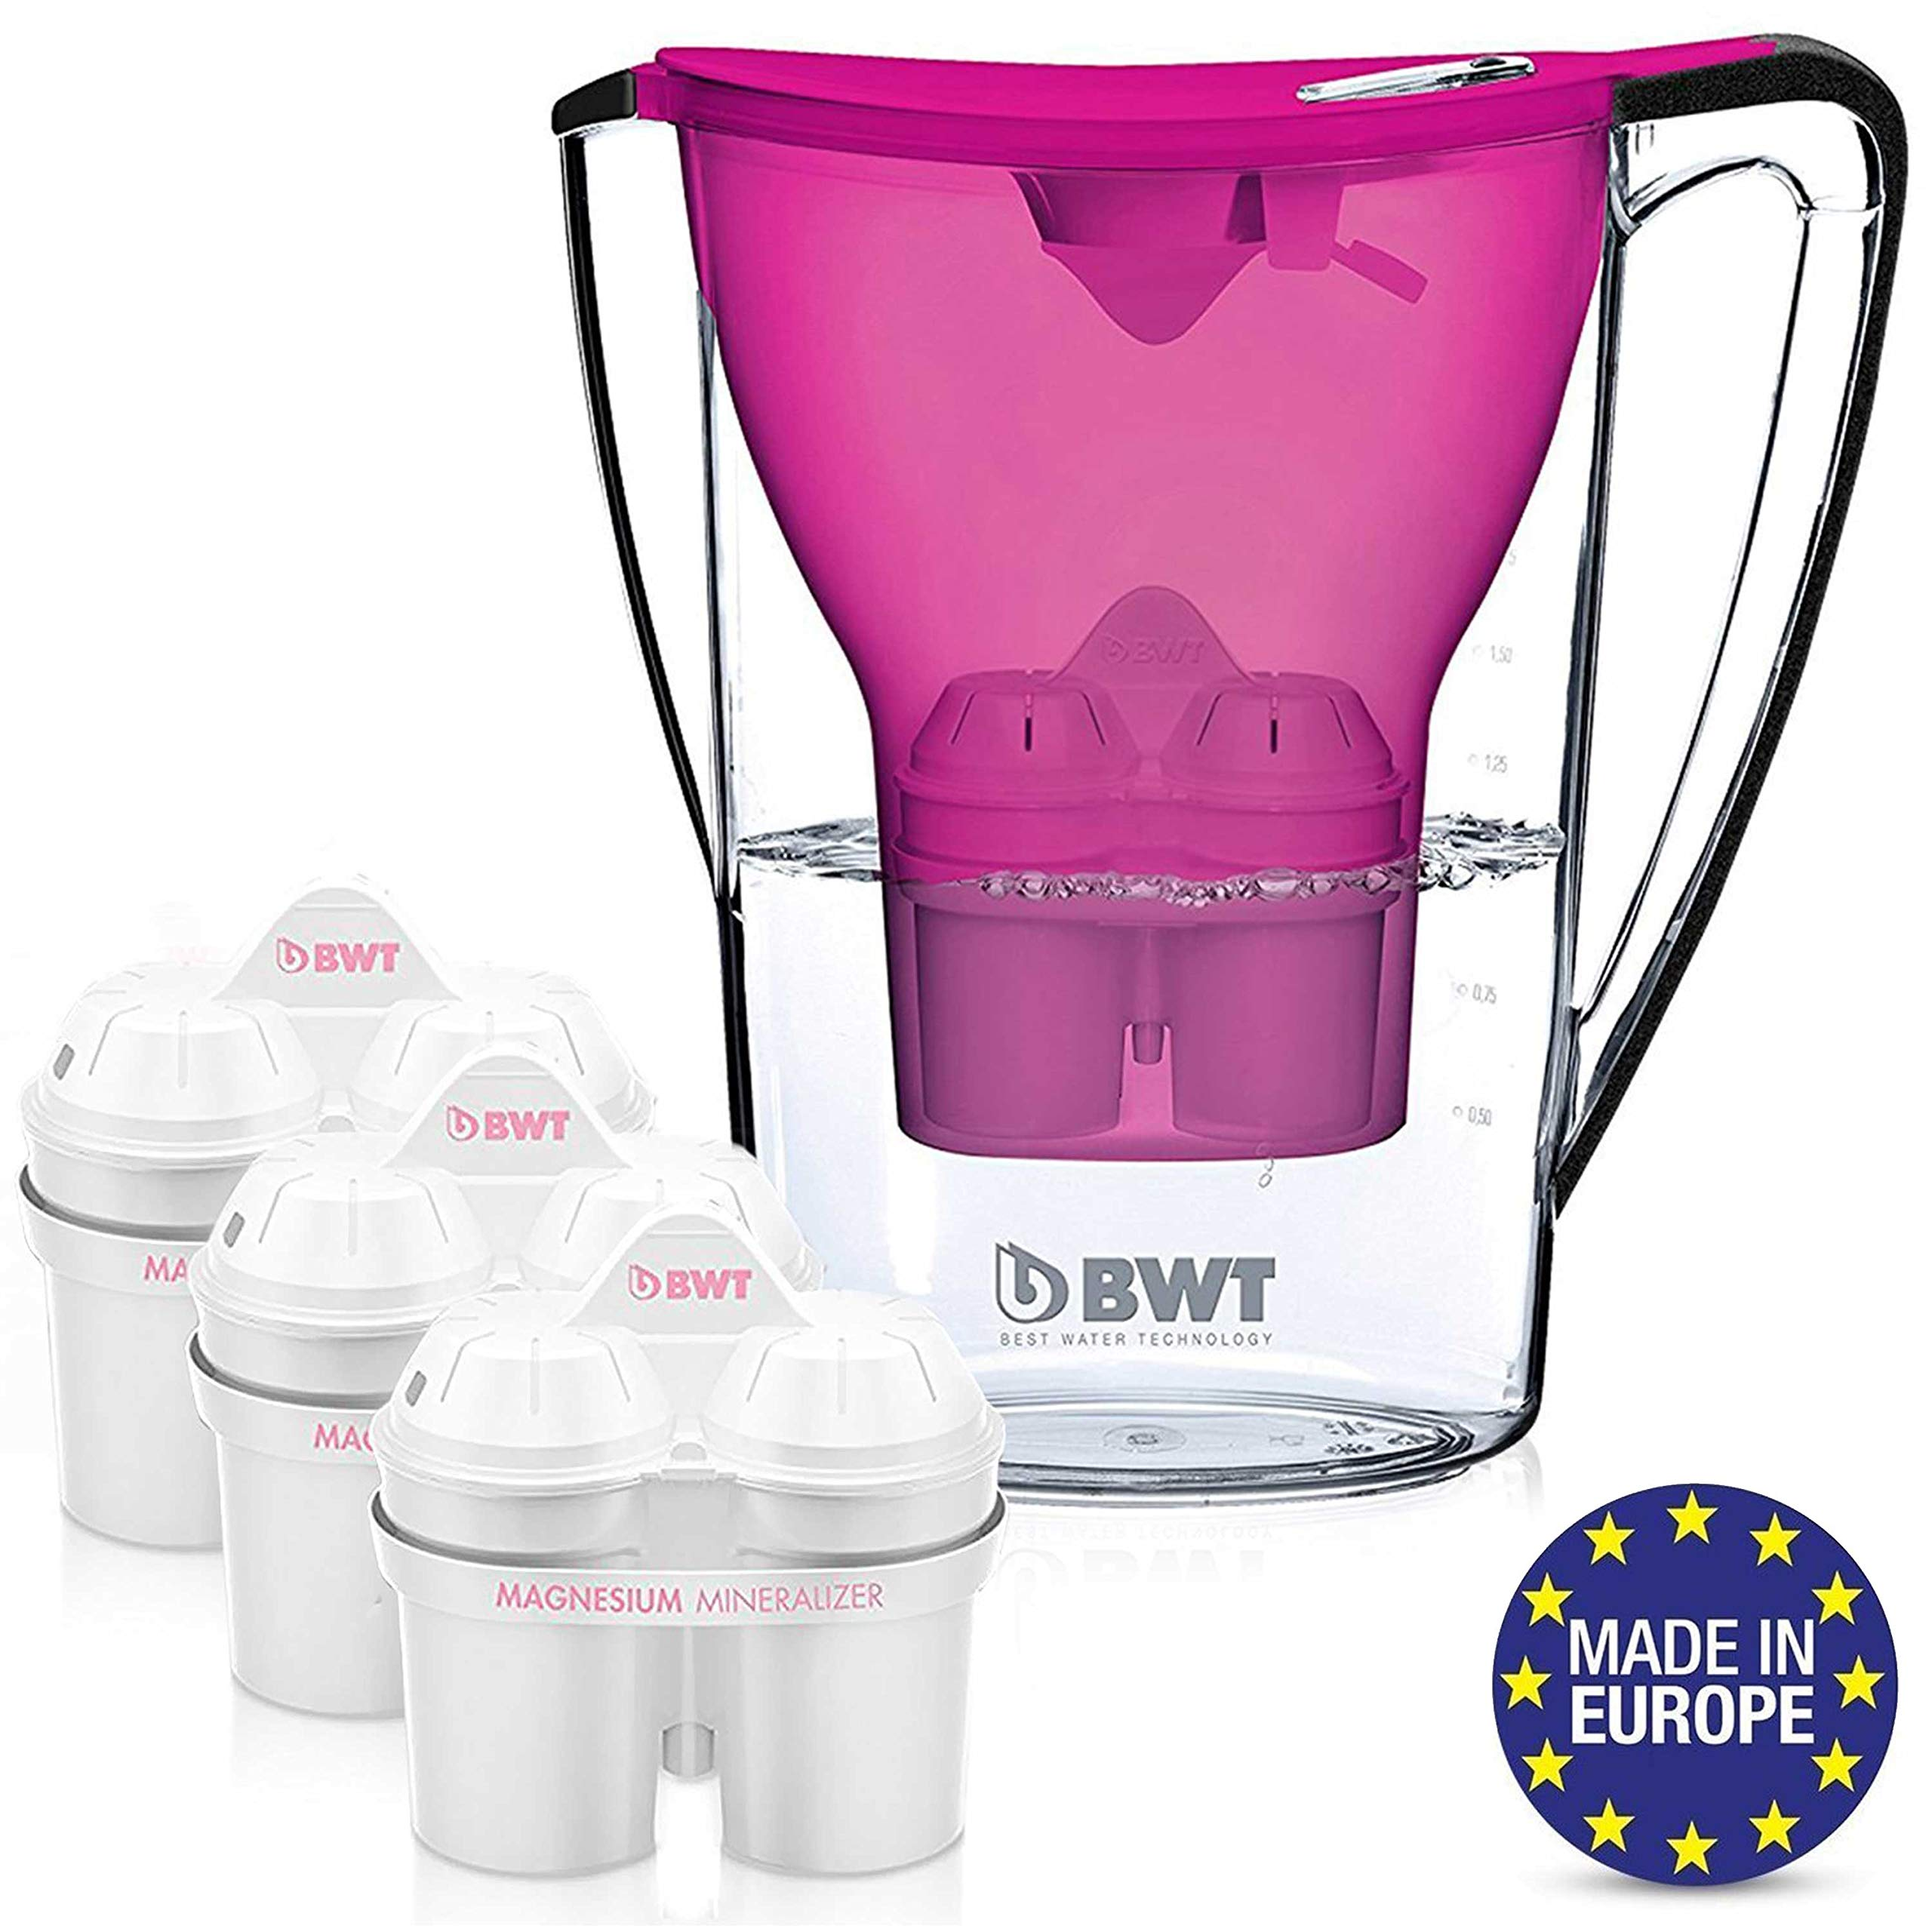 BWT Premium Water Filter Pitcher With 3 Bonus 60 Day Filters, Award Winning Austrian Quality, Technology For Superior Filtration & Taste (Aubergine)